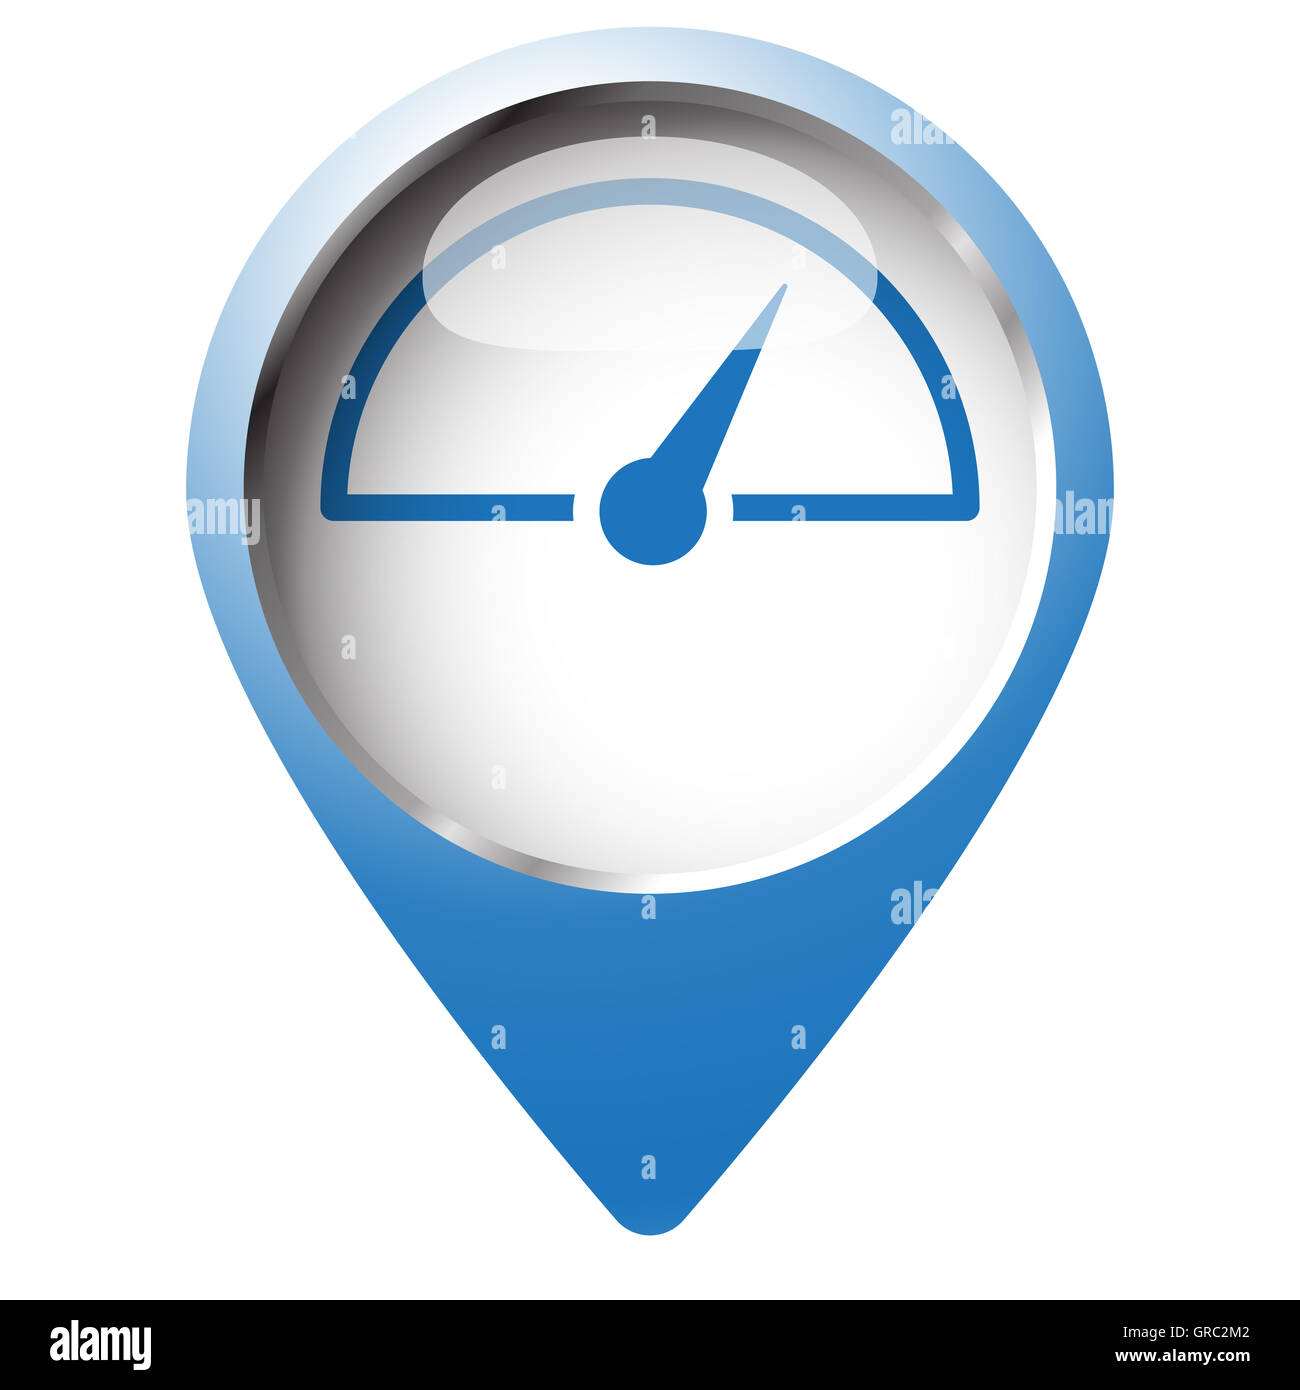 Metre squared symbol gallery symbol and sign ideas delighted symbol for meter contemporary electrical circuit map pin symbol with speed meter icon blue symbol biocorpaavc